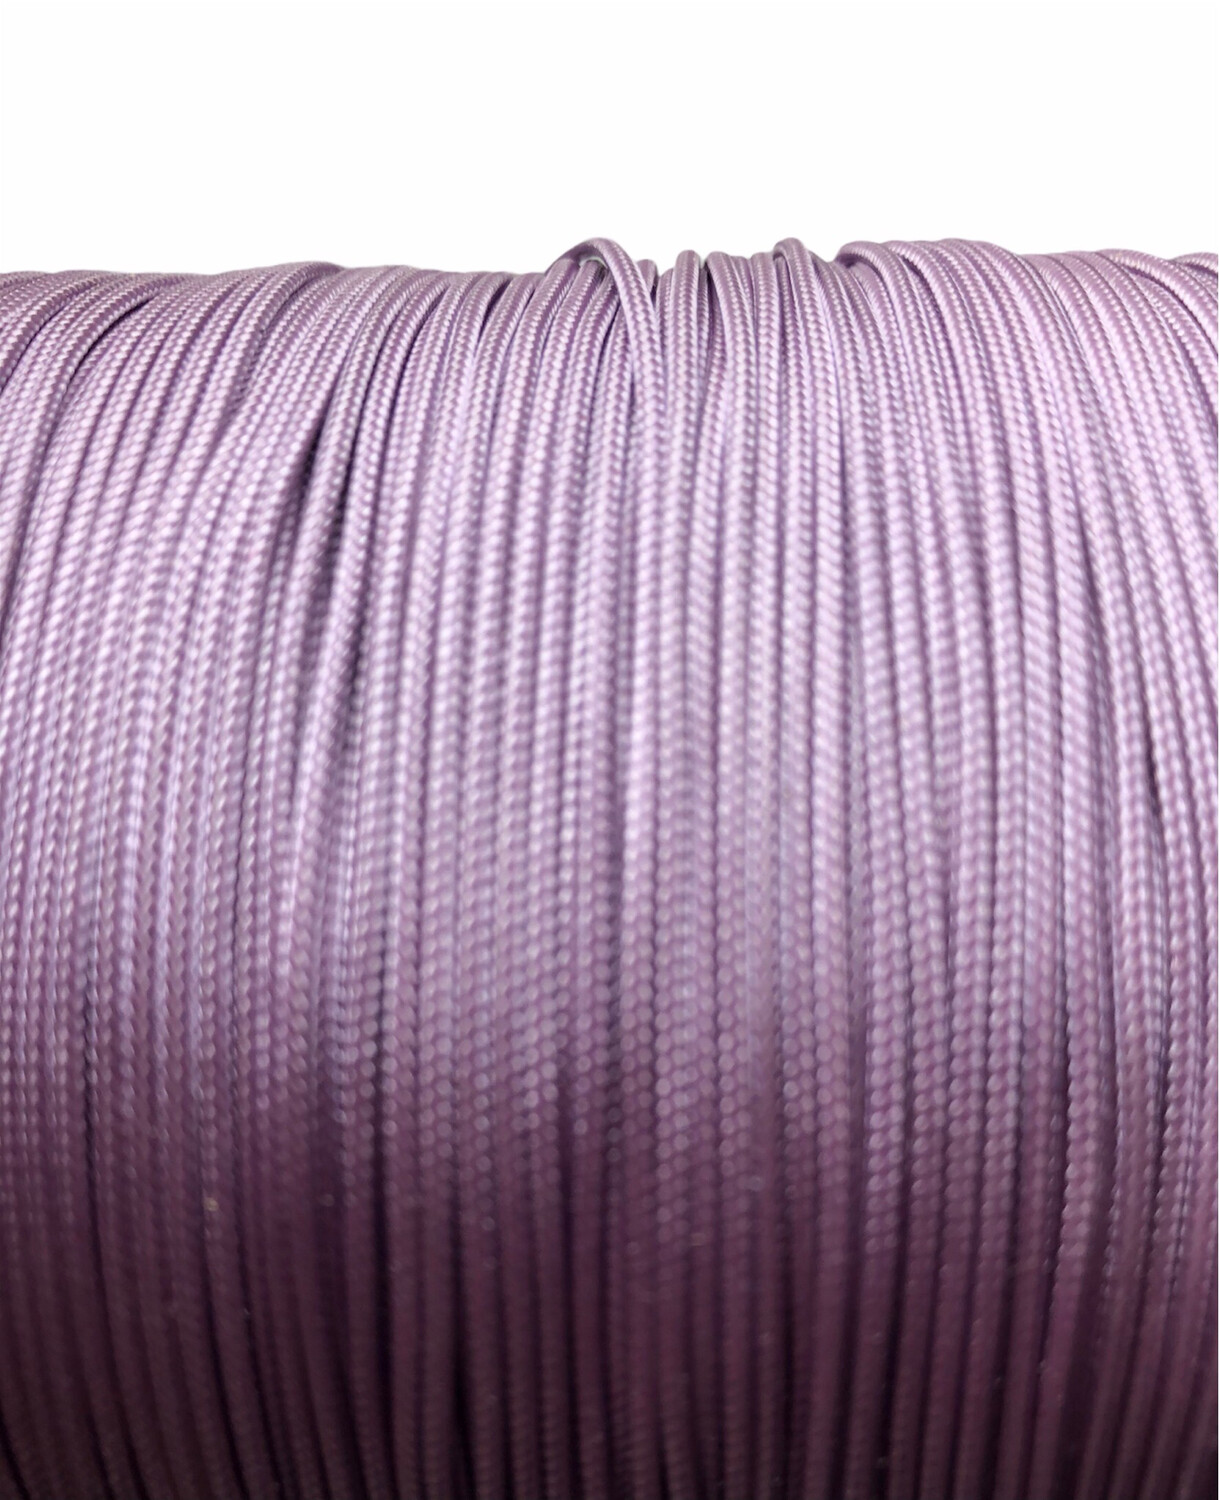 Polyester Knyttesnor 1,4 mm fast. Lys Lilla 10 m